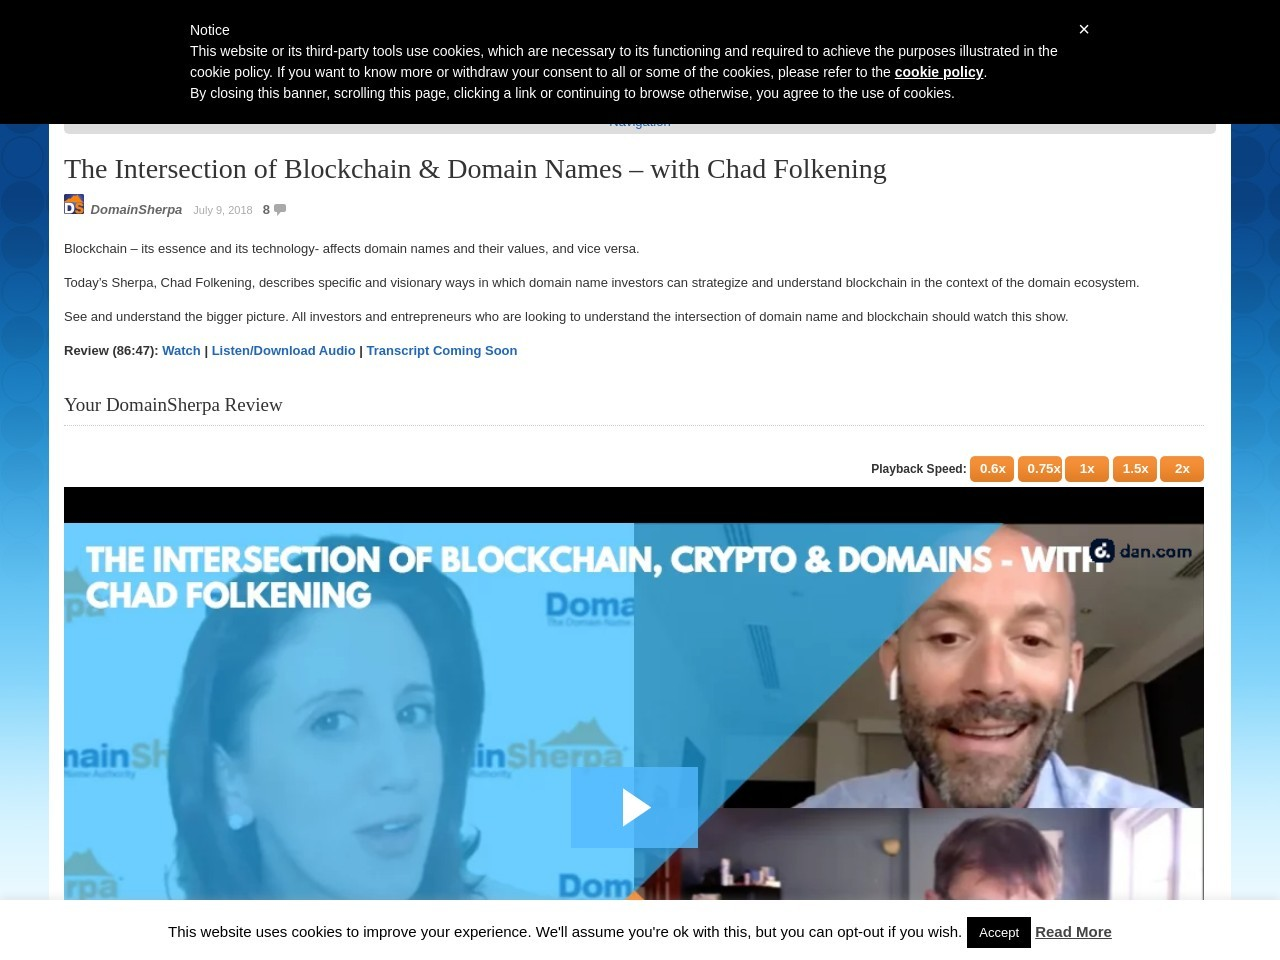 The Intersection of Blockchain & Domain Names – with Chad Folkening